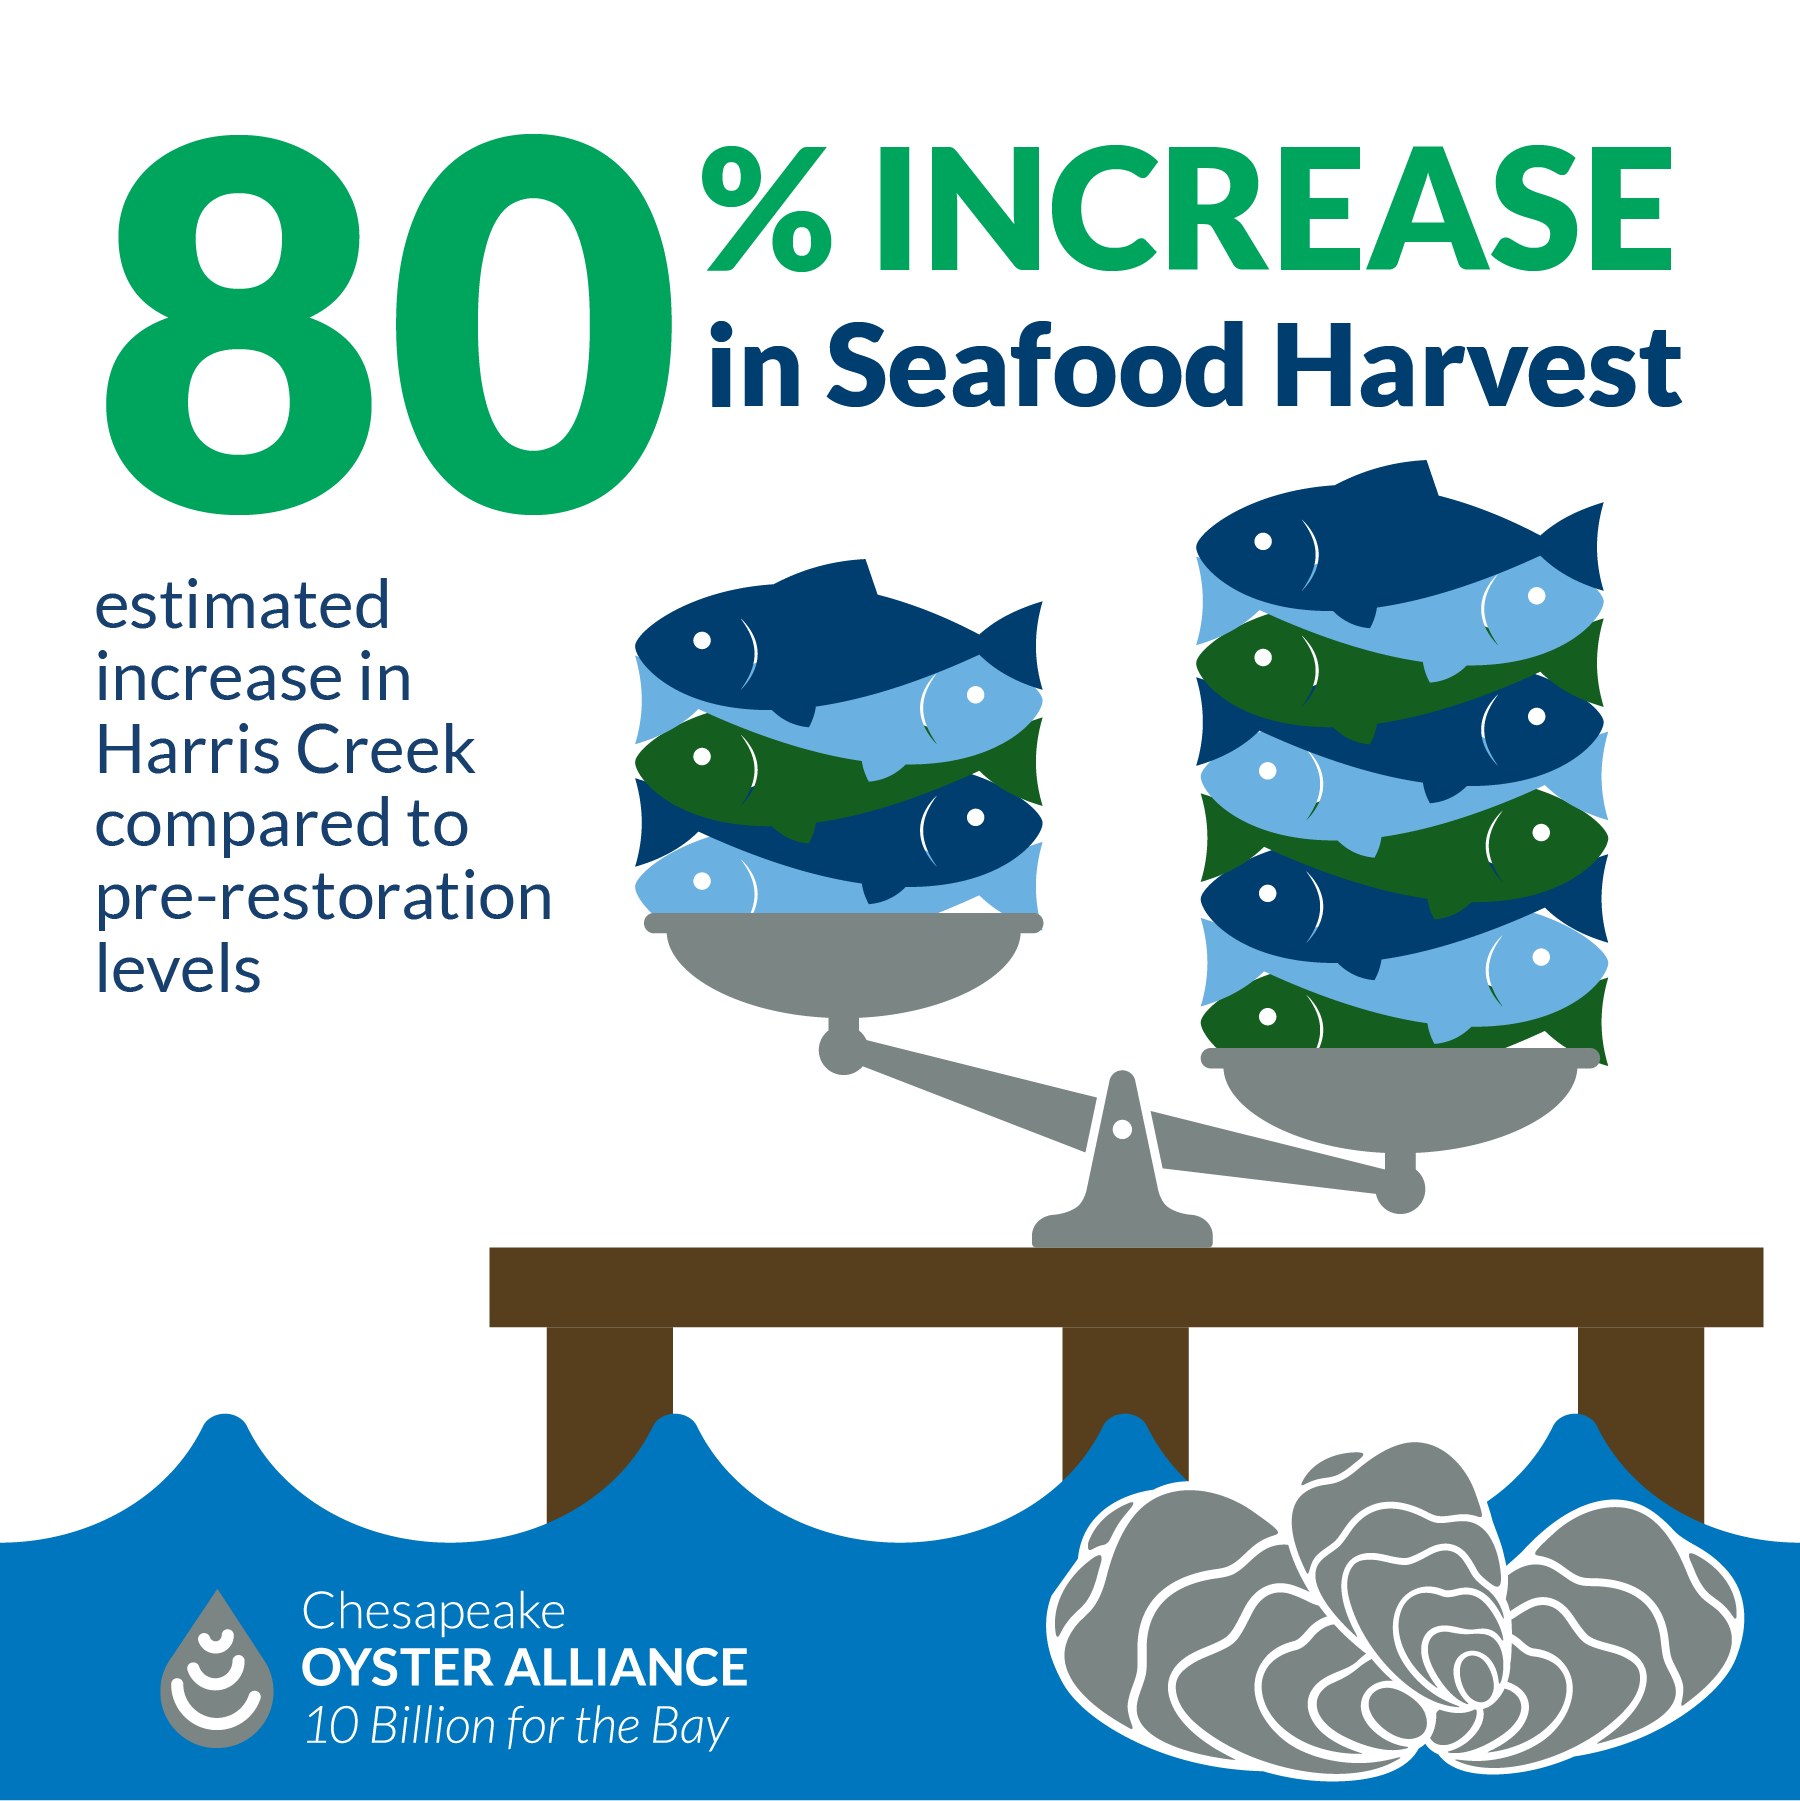 80% increase in seafood harvest estimated in Harris Creek compared to pre-restoration levels.